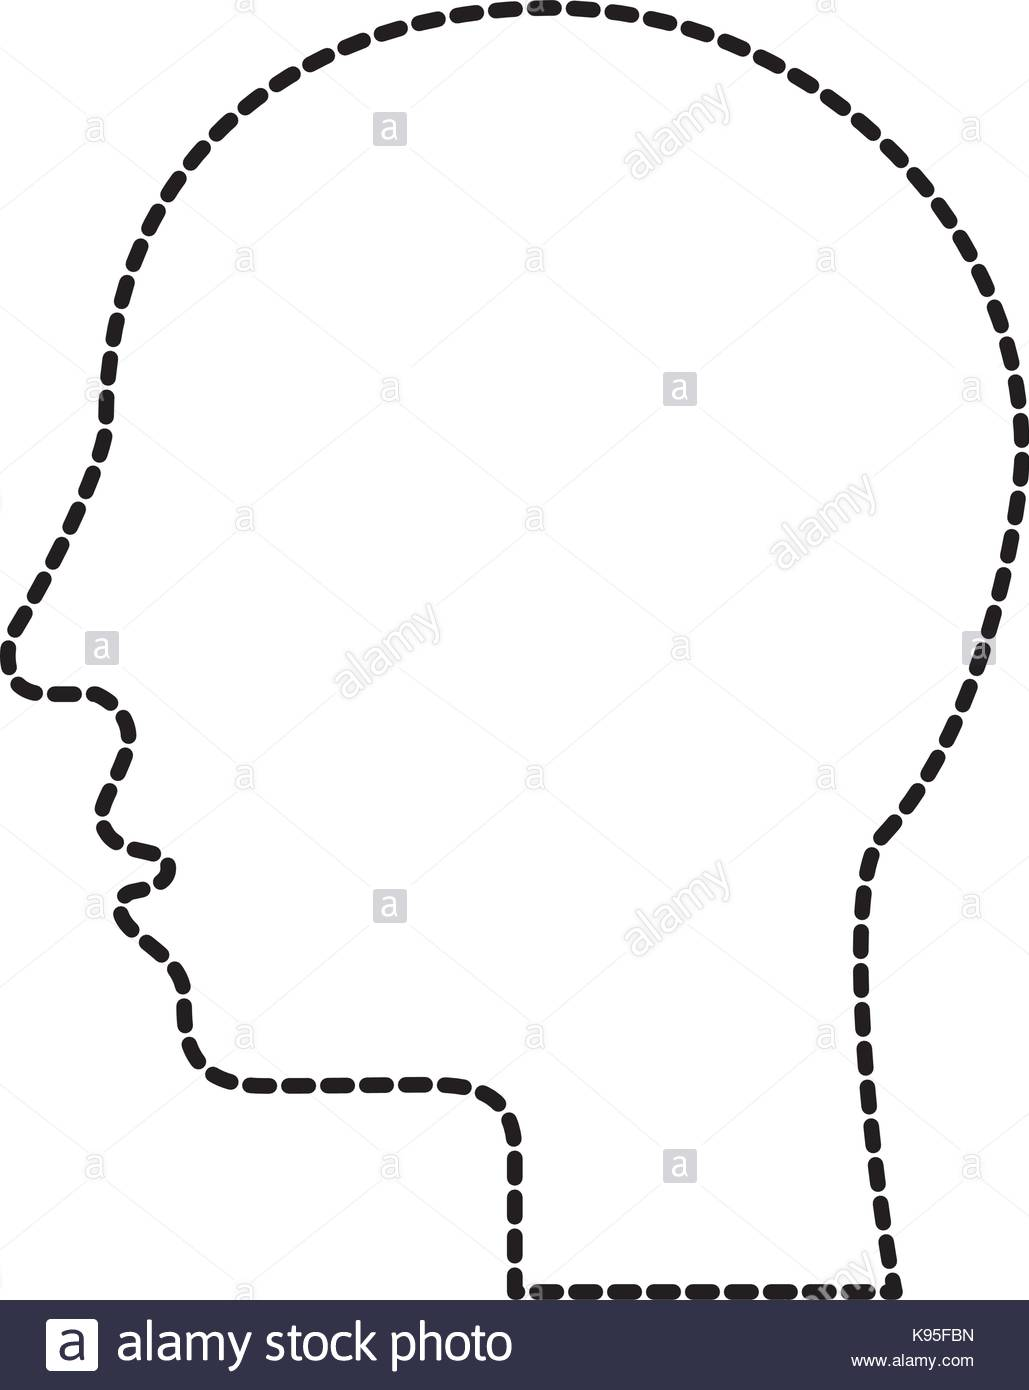 1029x1390 Silhouette Human Head Profile Man Image Stock Vector Art